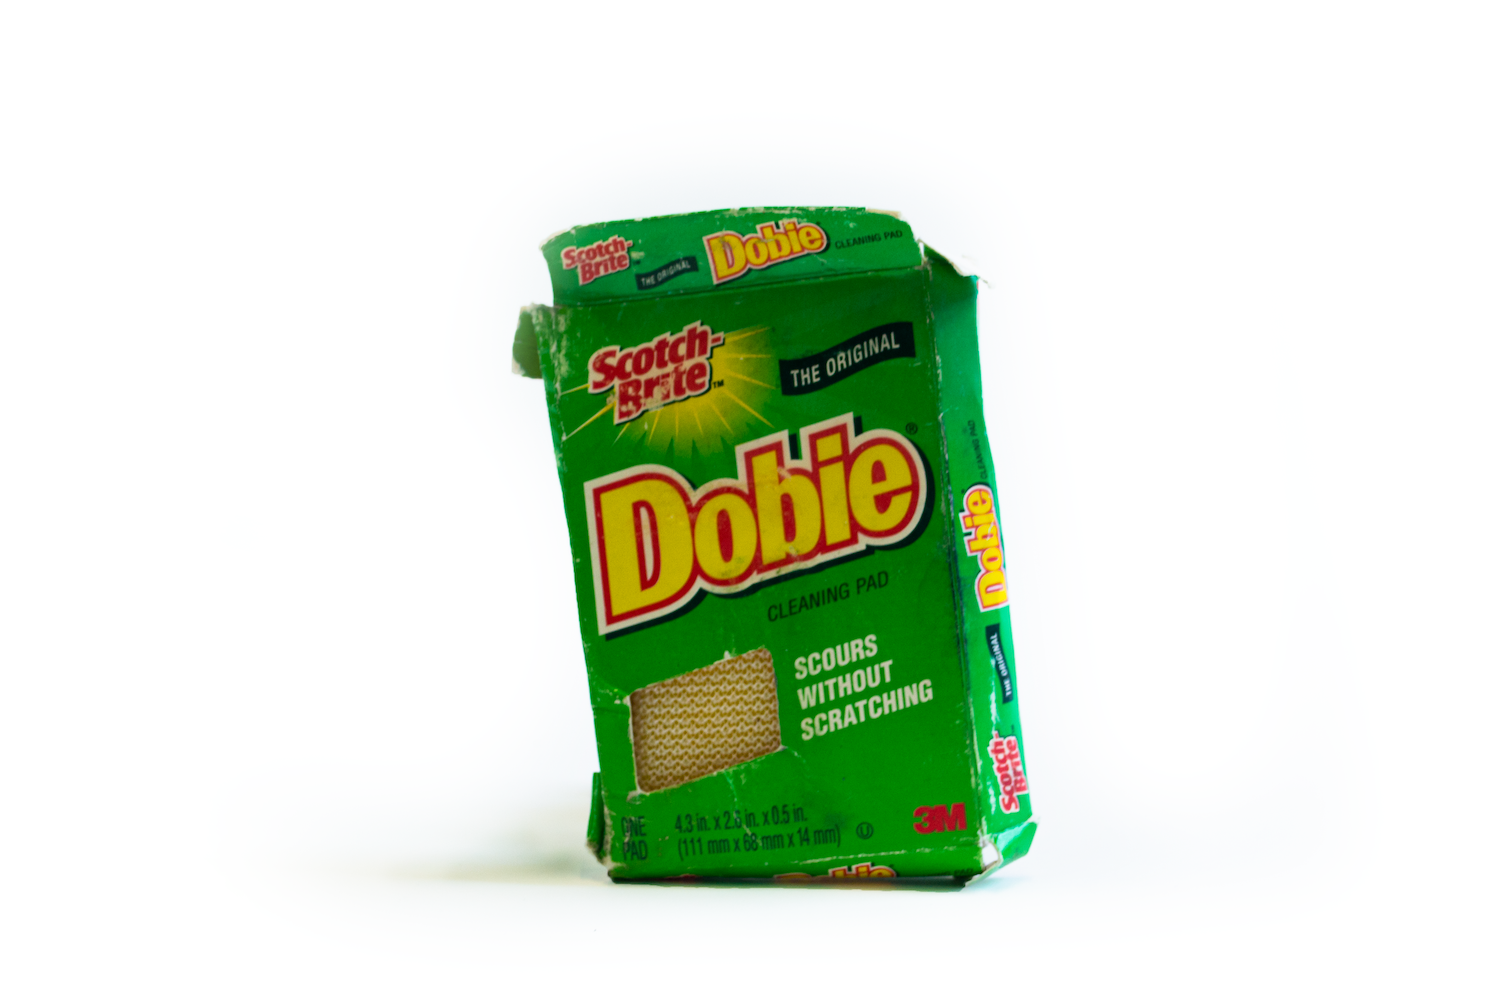 Scotch-Brite Dobie cleaning pad. Project of CDS Graduating Student Sarah Holtz. Photo by Del Agnew.